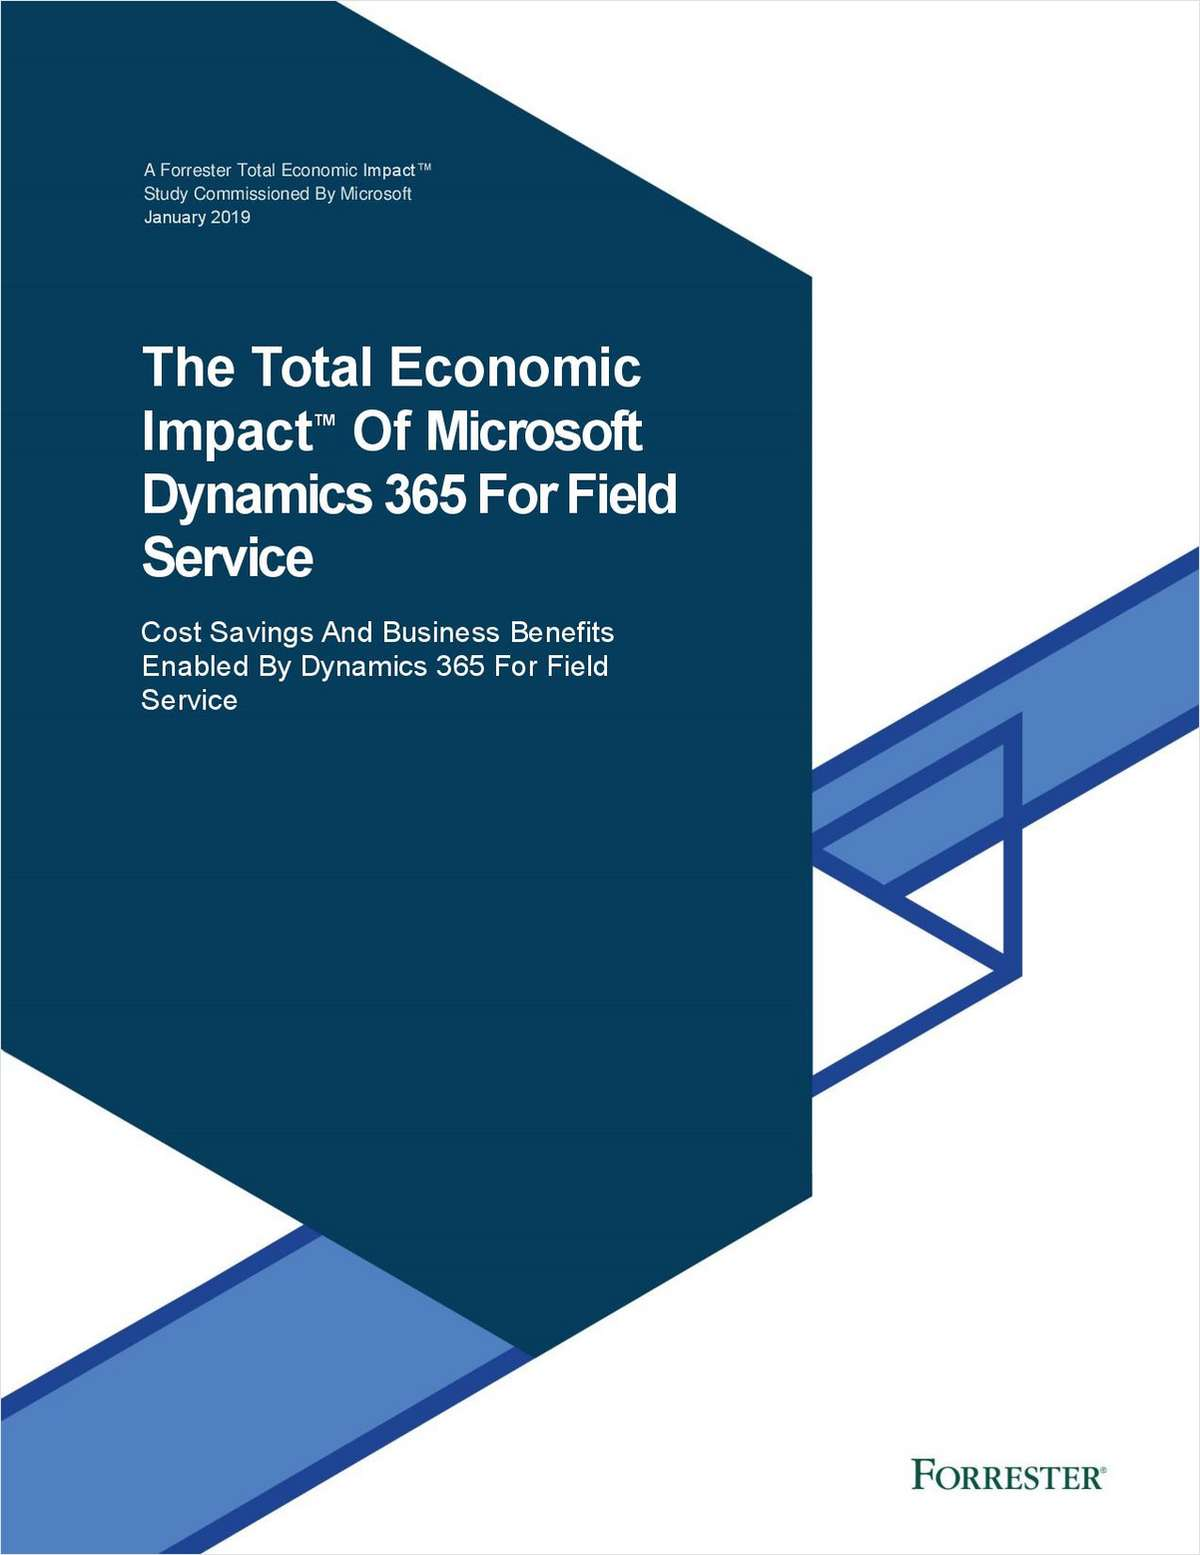 The Total Economic Impact of Microsoft Dynamics 365 For Field Service - Cost Savings and Business Benefits Enabled by Dynamics 365 For Field Service